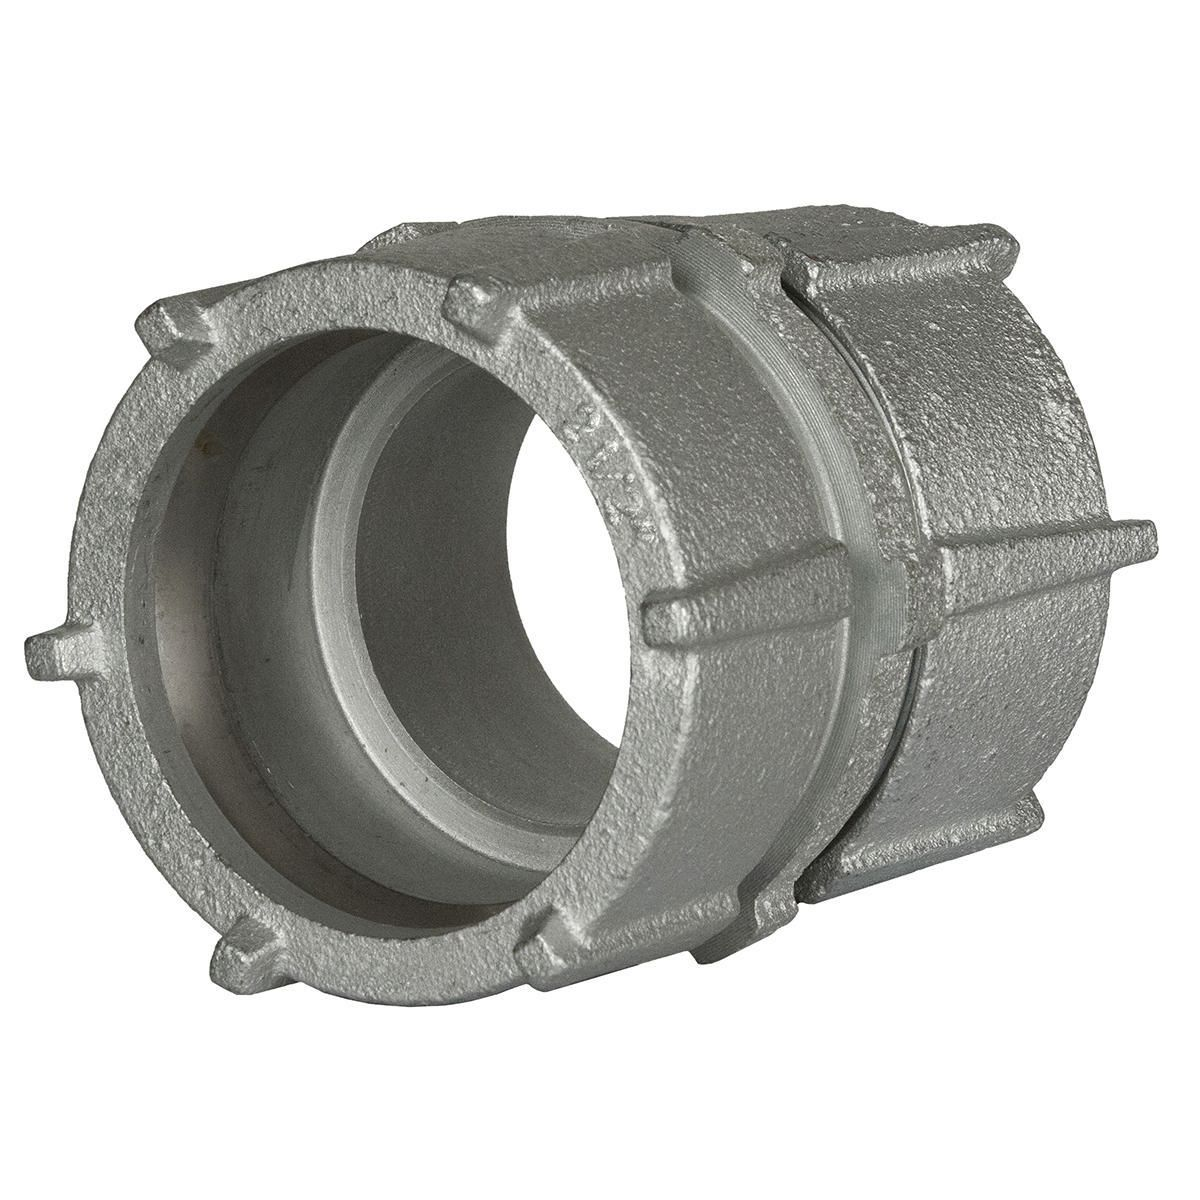 RGD/IMC COMPR COUPLING 4 IN MALL IRON